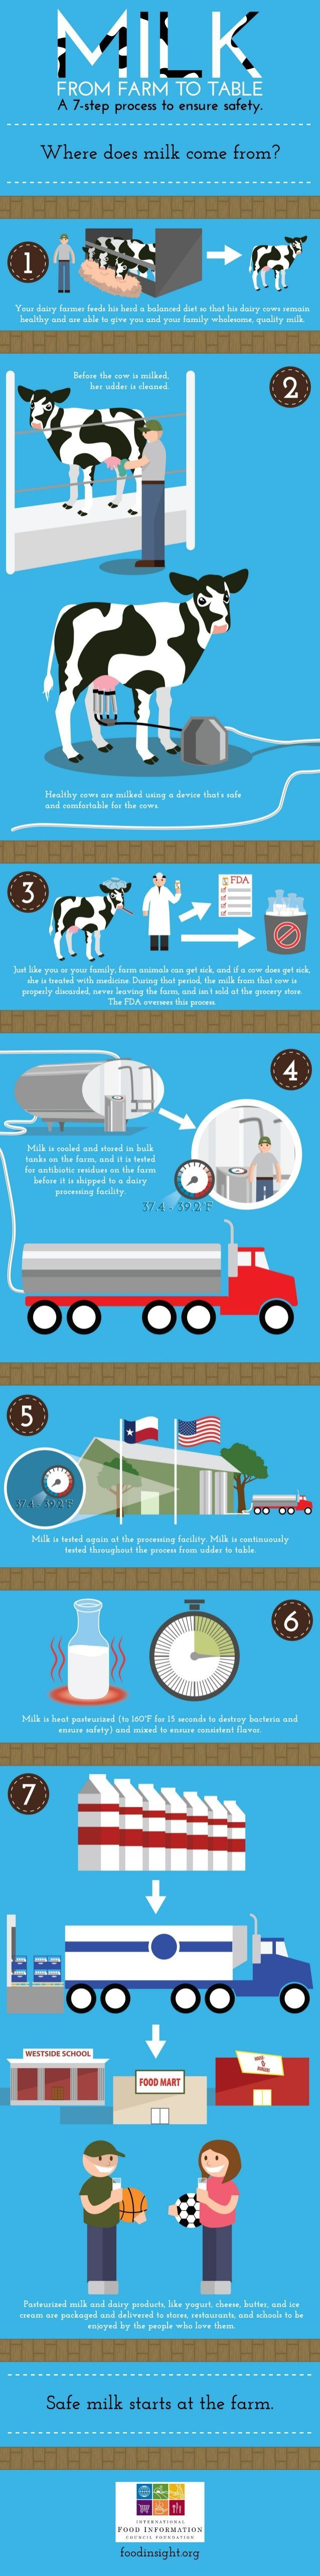 How does your milk get to you (and how do I know it's safe?) Milk production infographic  2014 by FoodInsight #dairy #DairyMonth #foodsafety